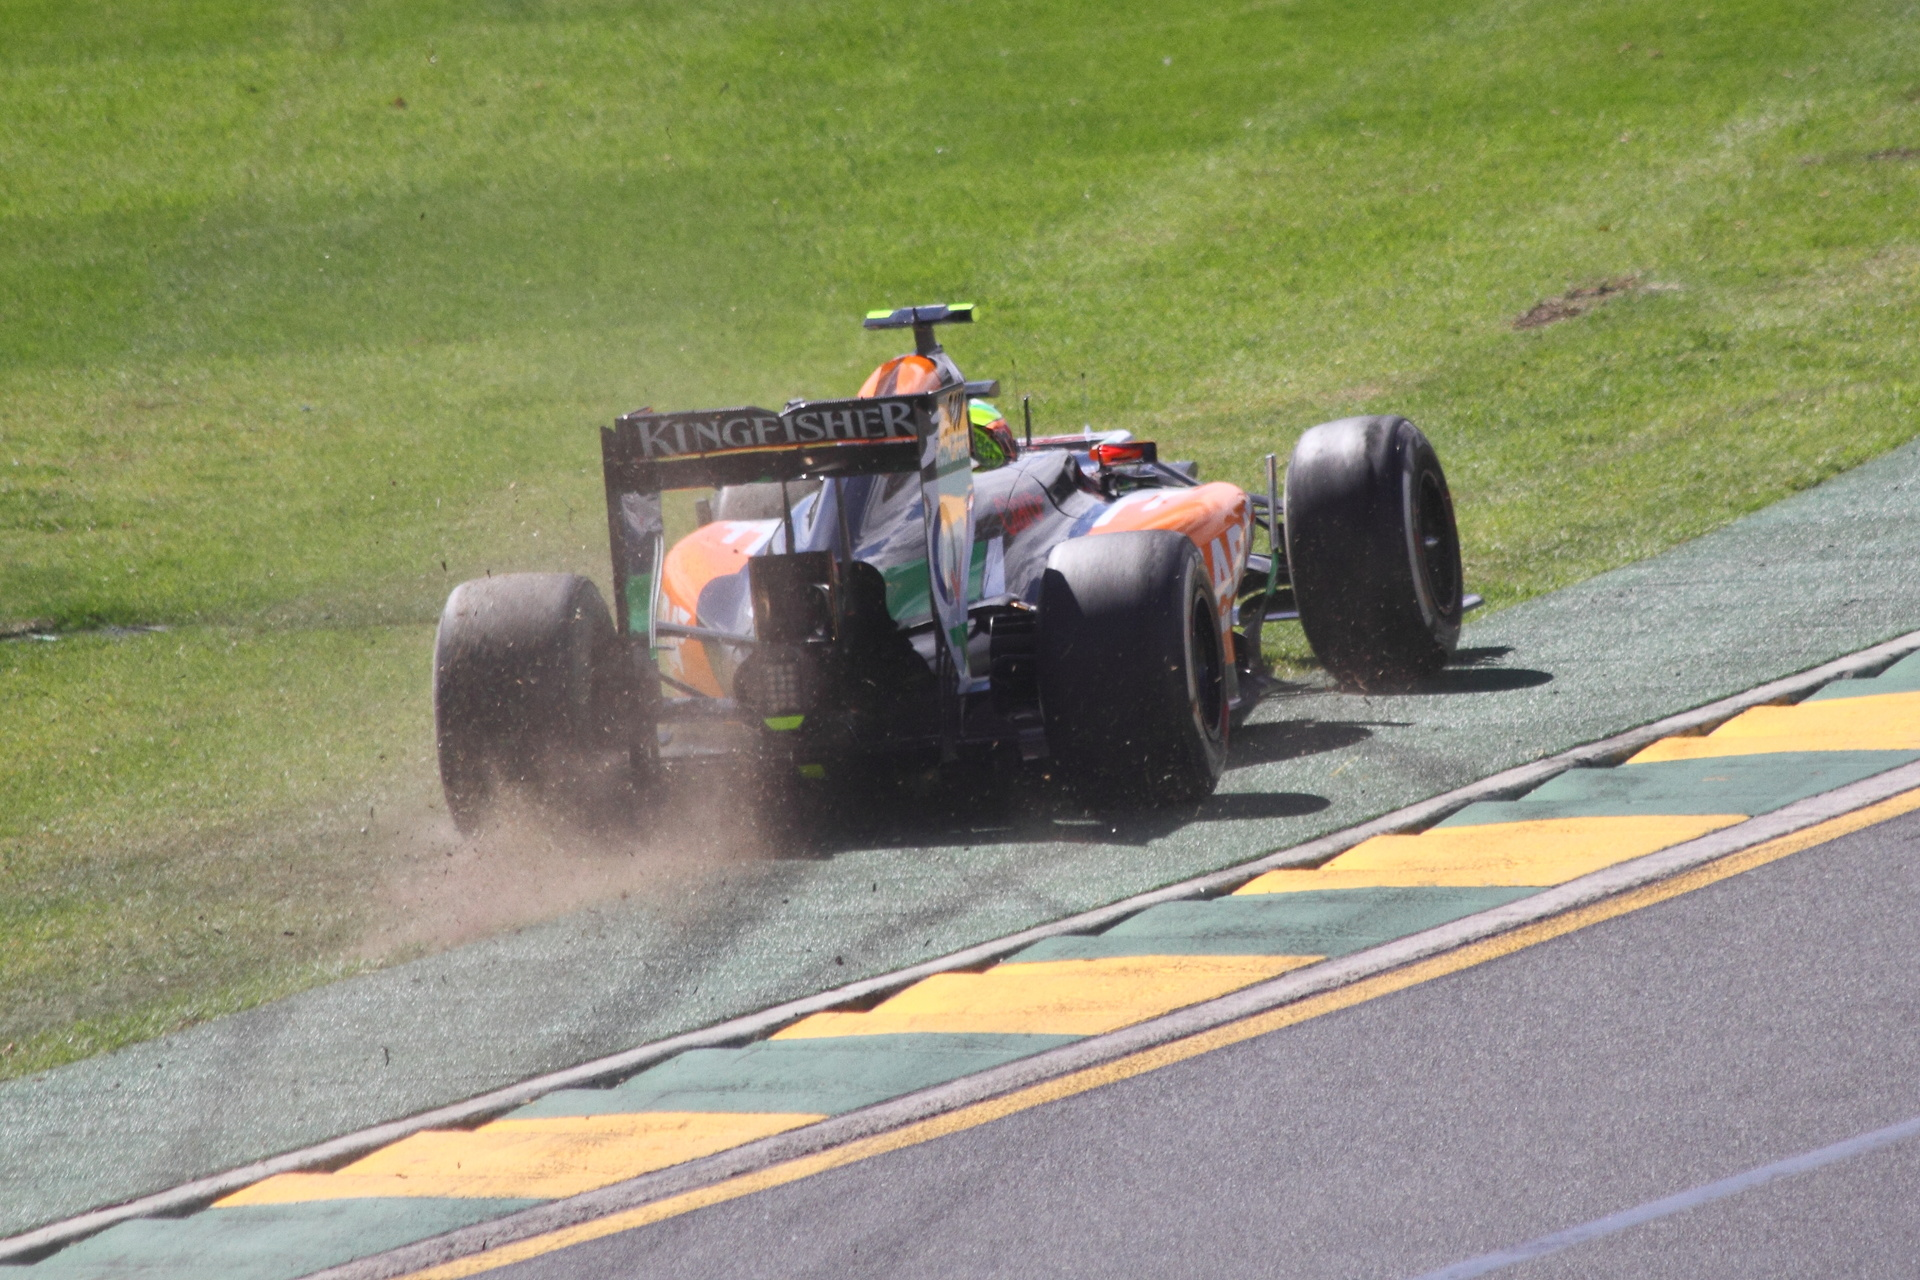 Perez on the grass